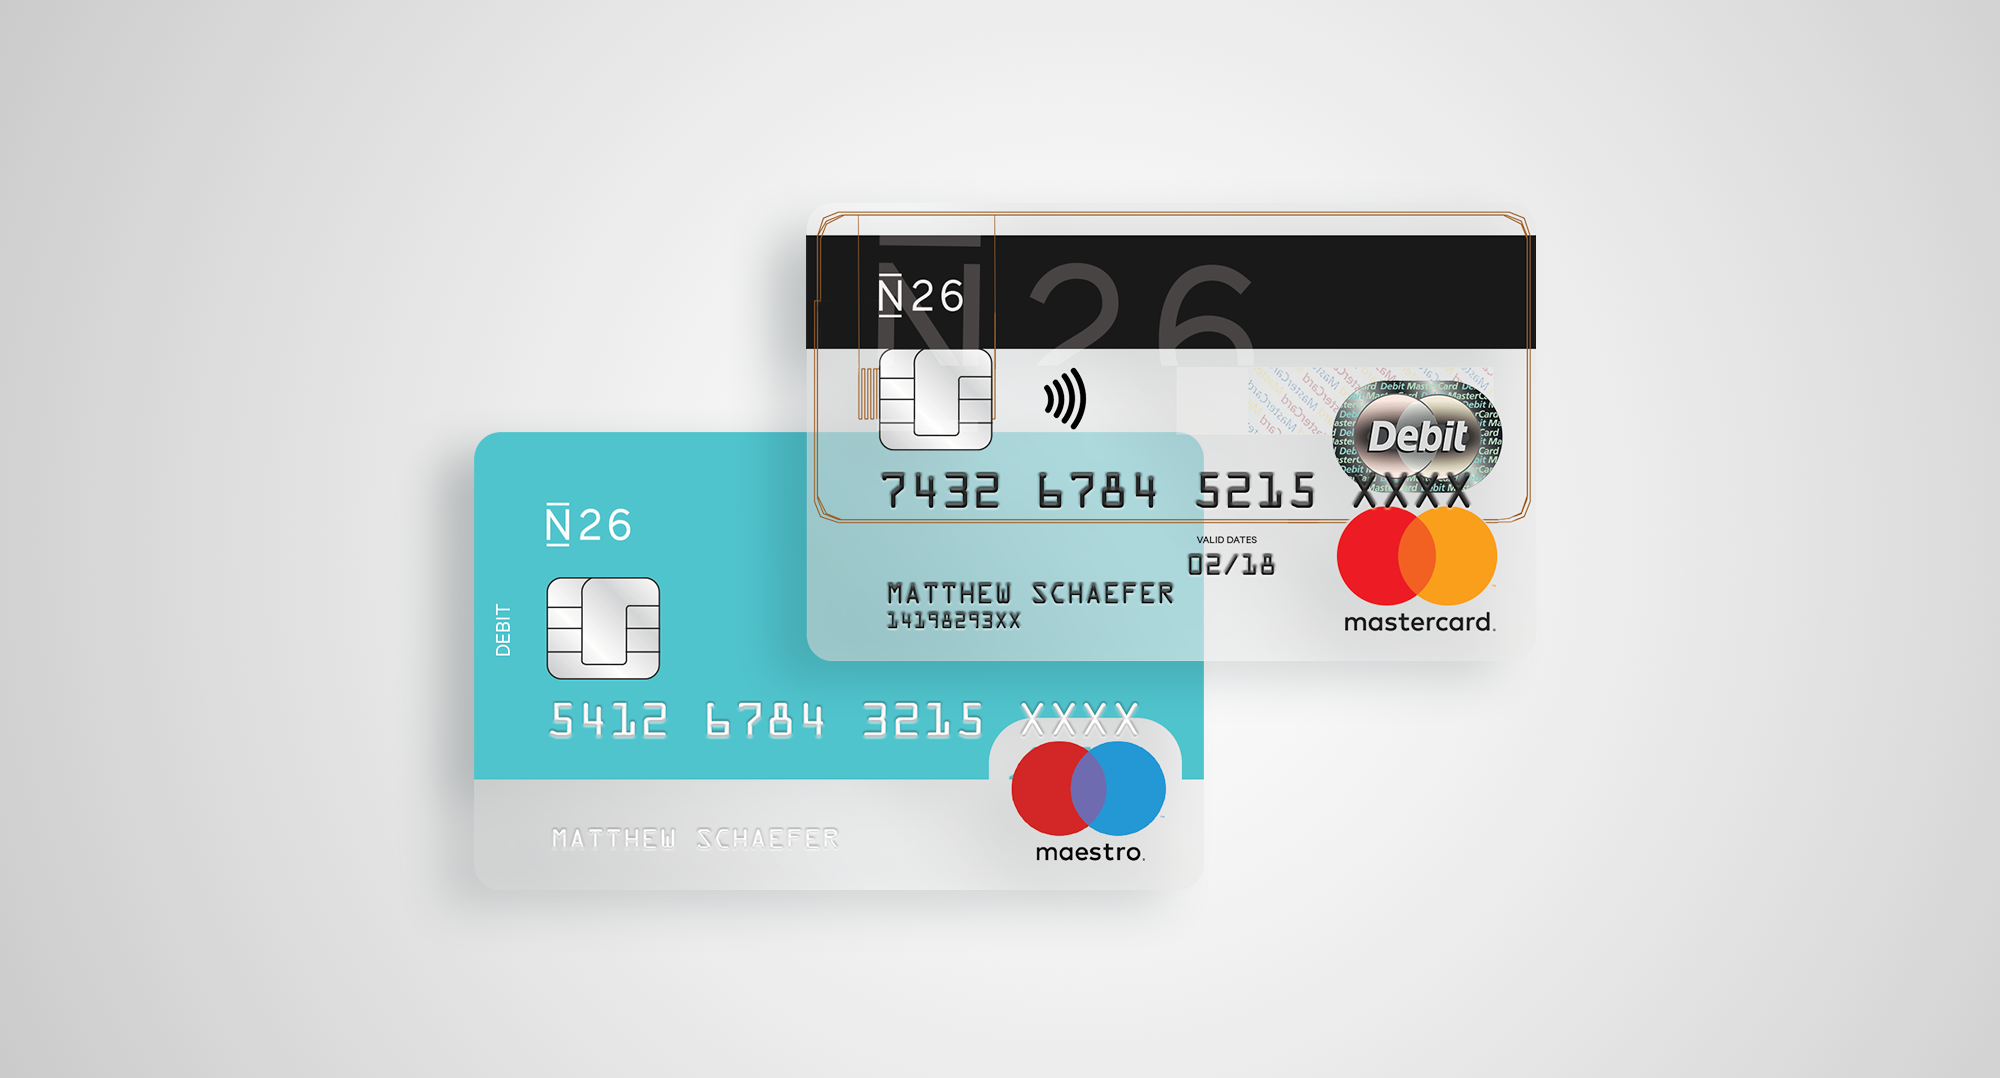 How to make online payment with sbi maestro debit card